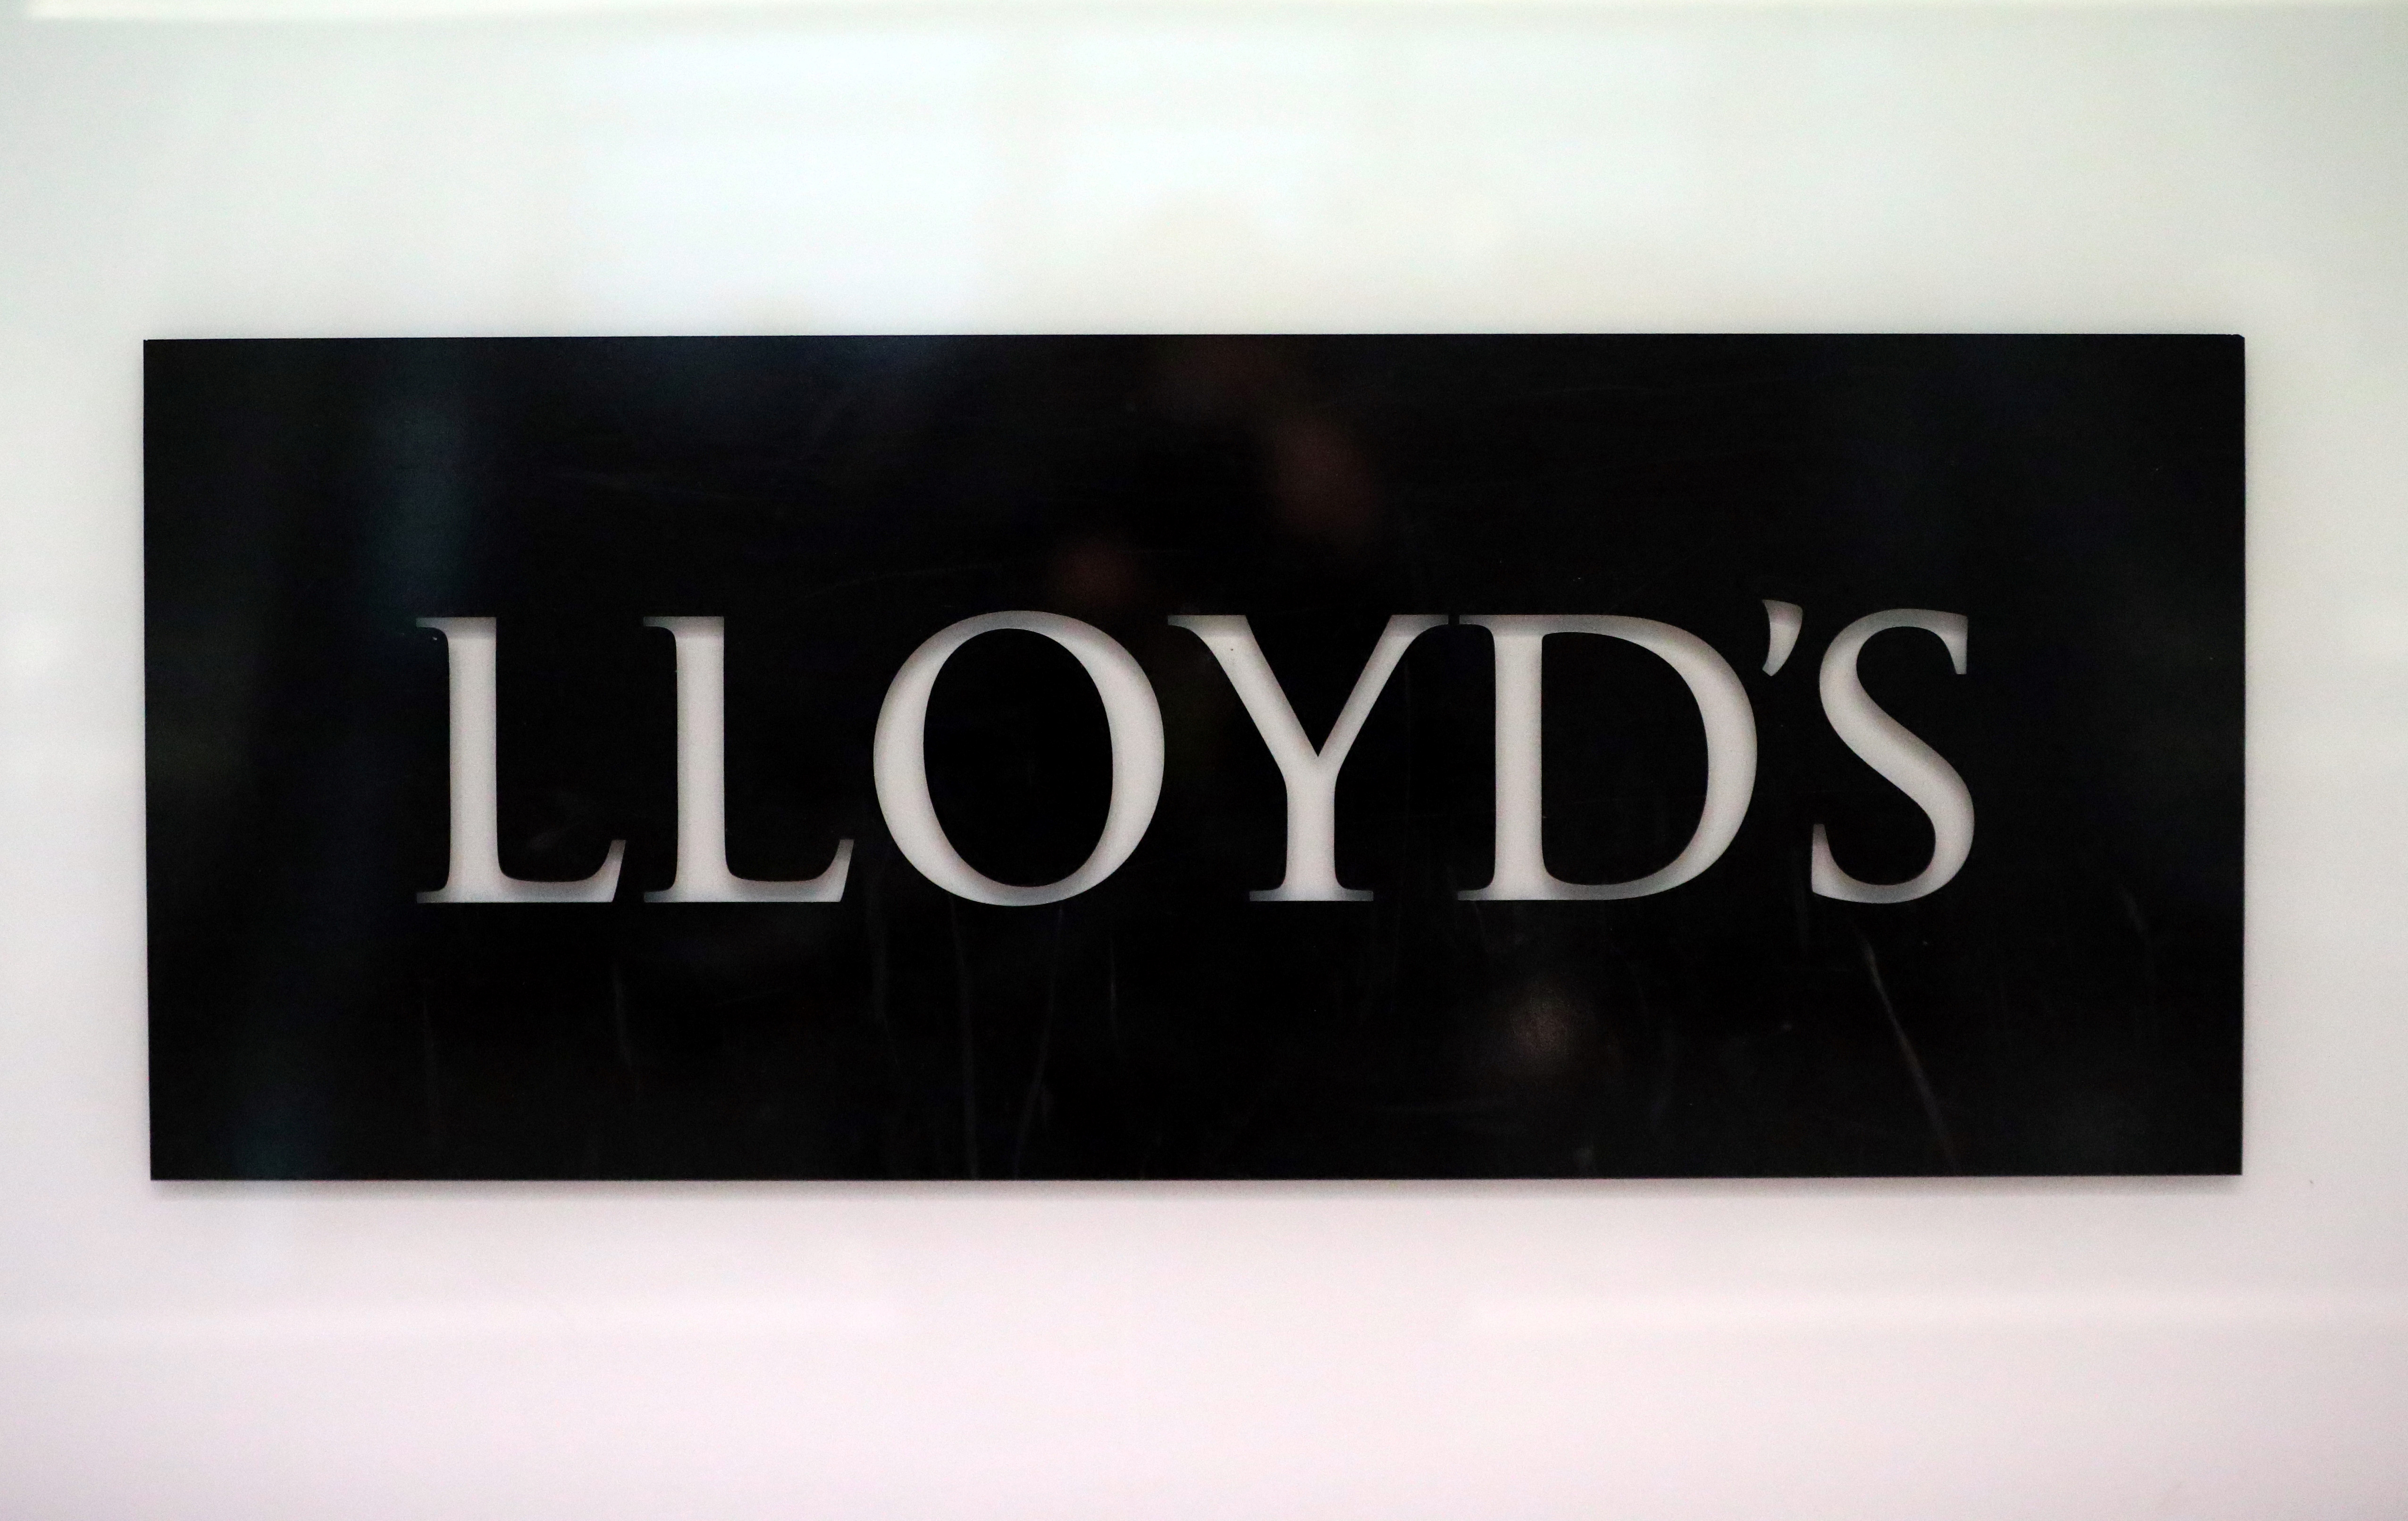 Signage is seen inside the Lloyd's of London building in the City of London financial district in London, Britain, April 16, 2019. REUTERS/Hannah McKay